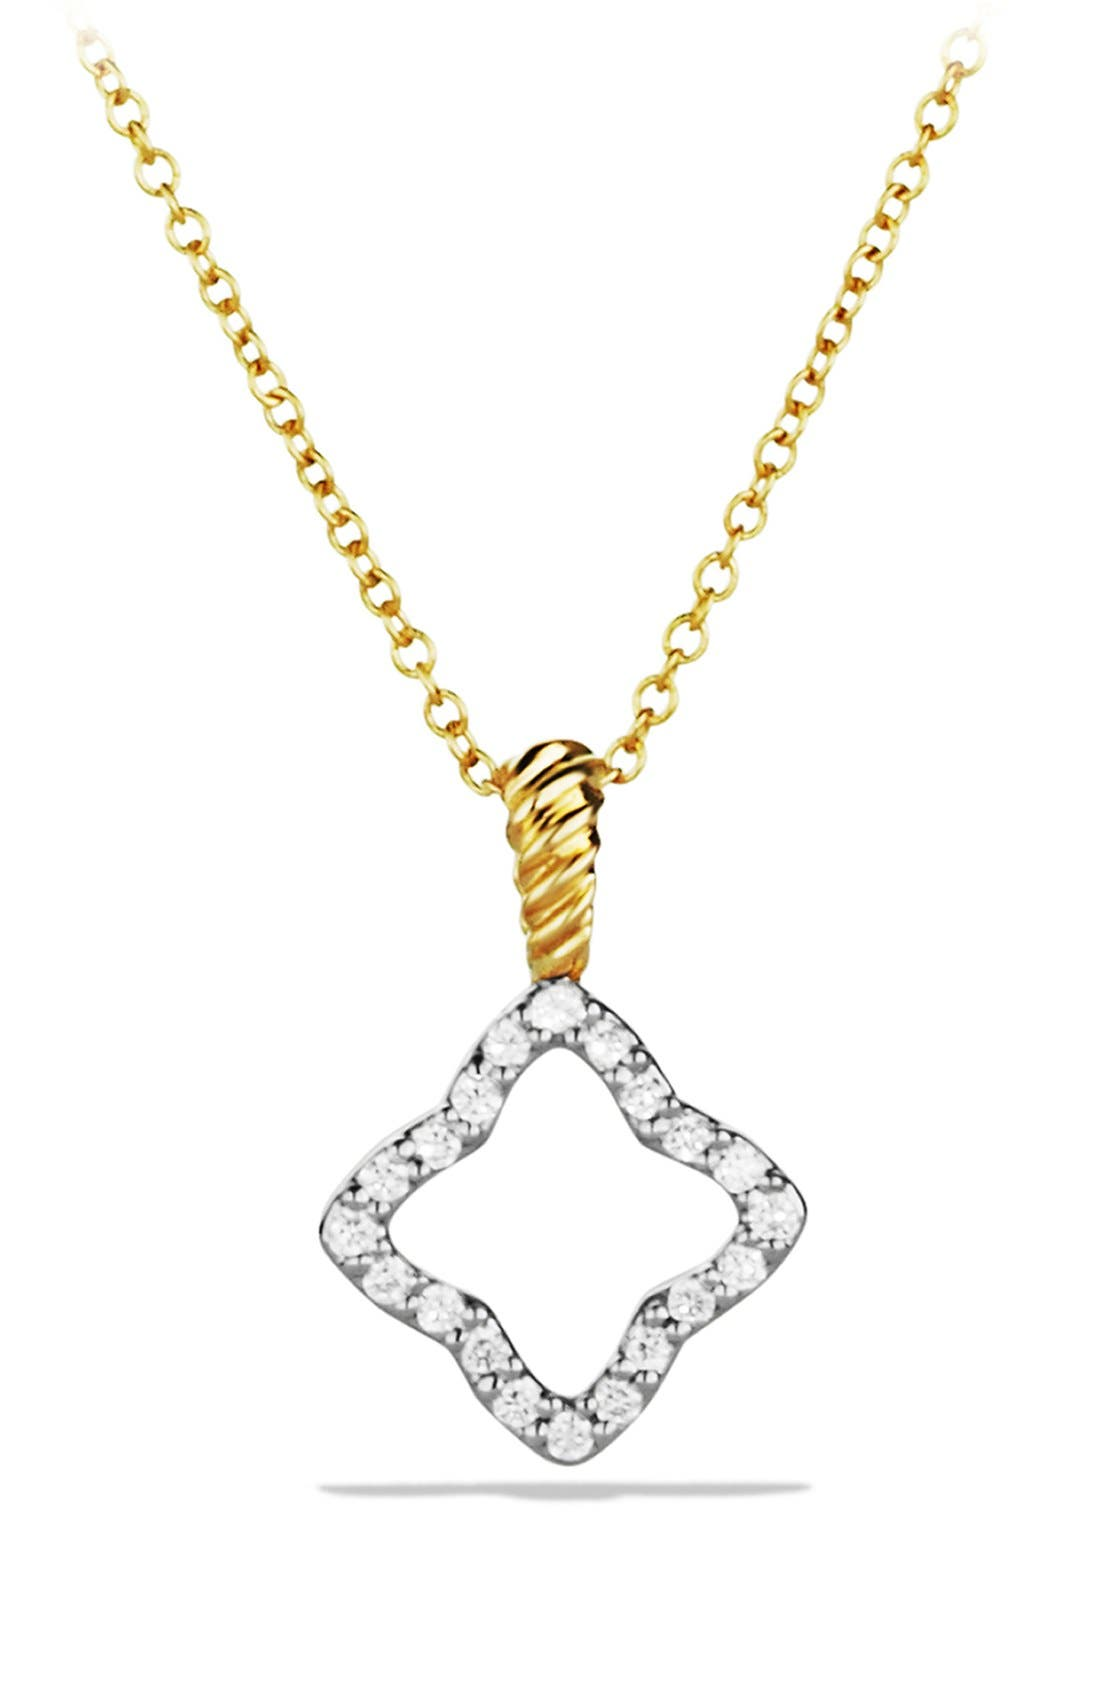 Main Image - David Yurman 'Cable Collectibles' Quatrefoil Pendant with Diamonds in Gold on Chain